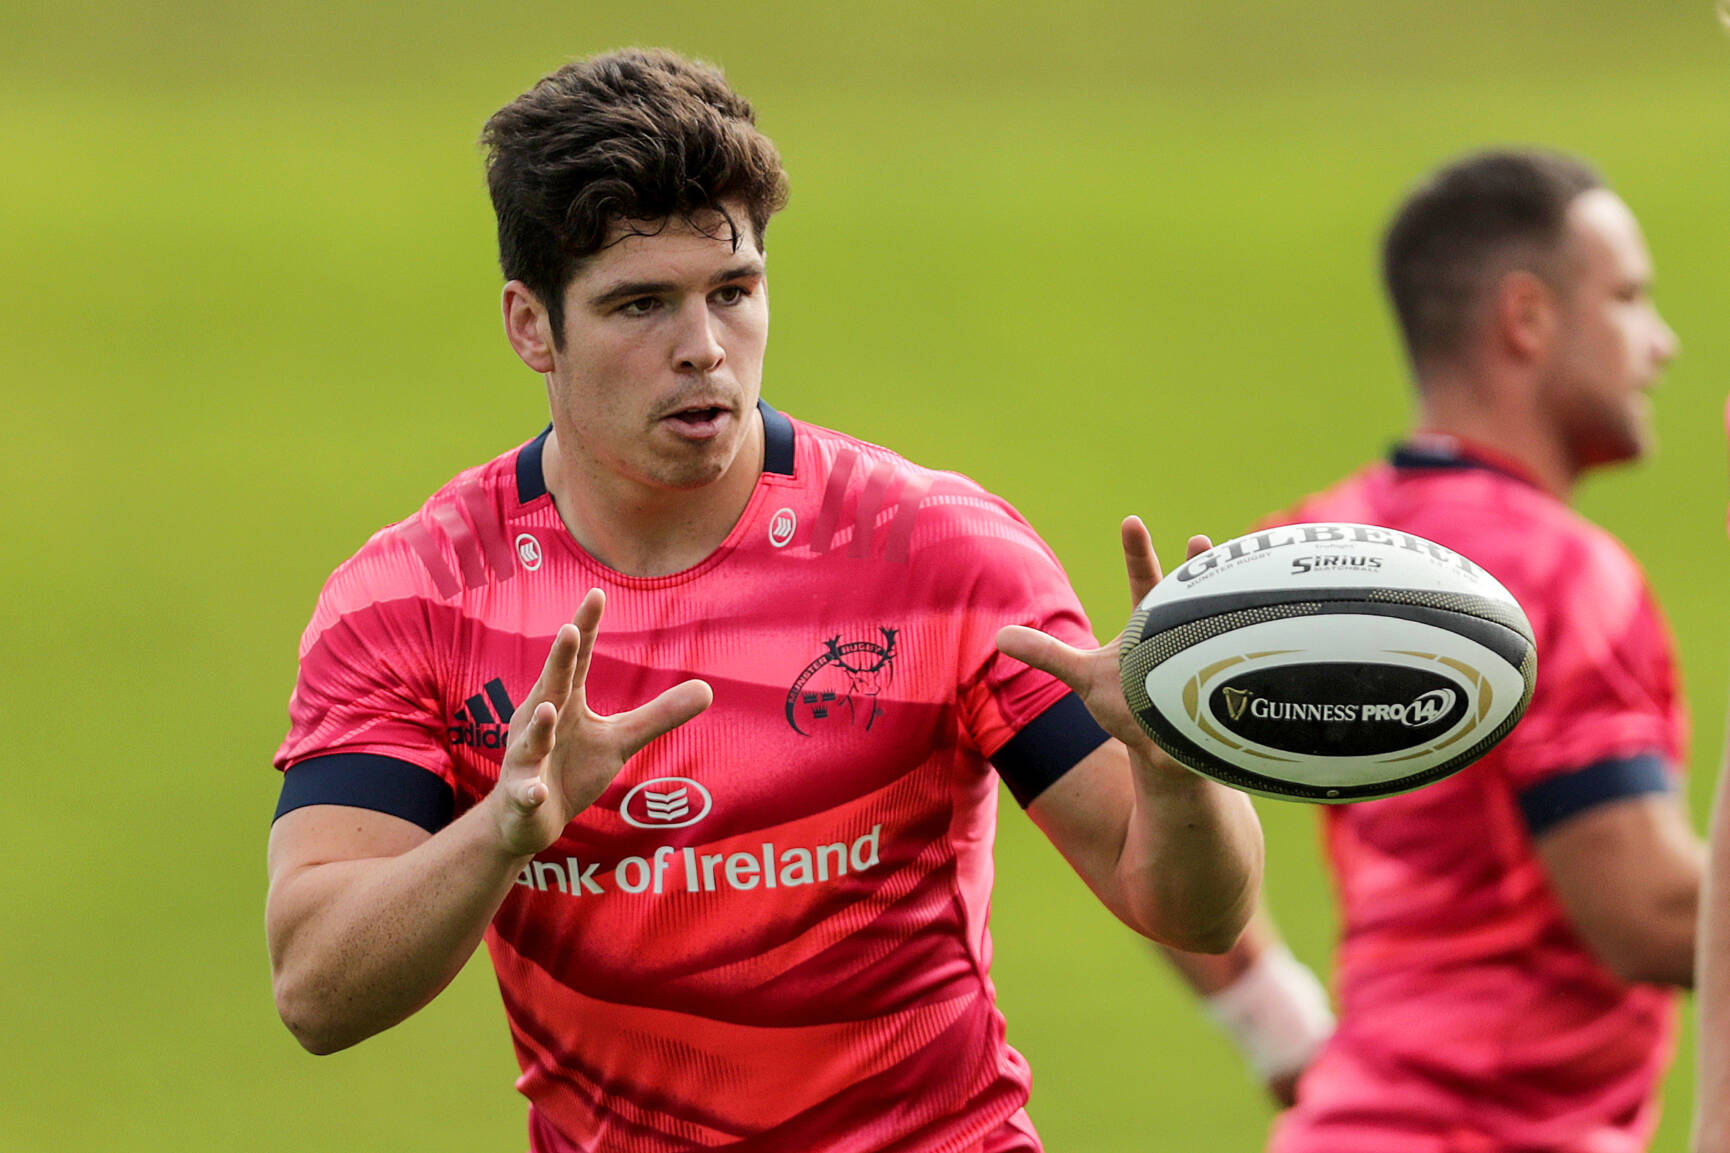 Connacht Announce Loan Signing Of Wootton From Munster